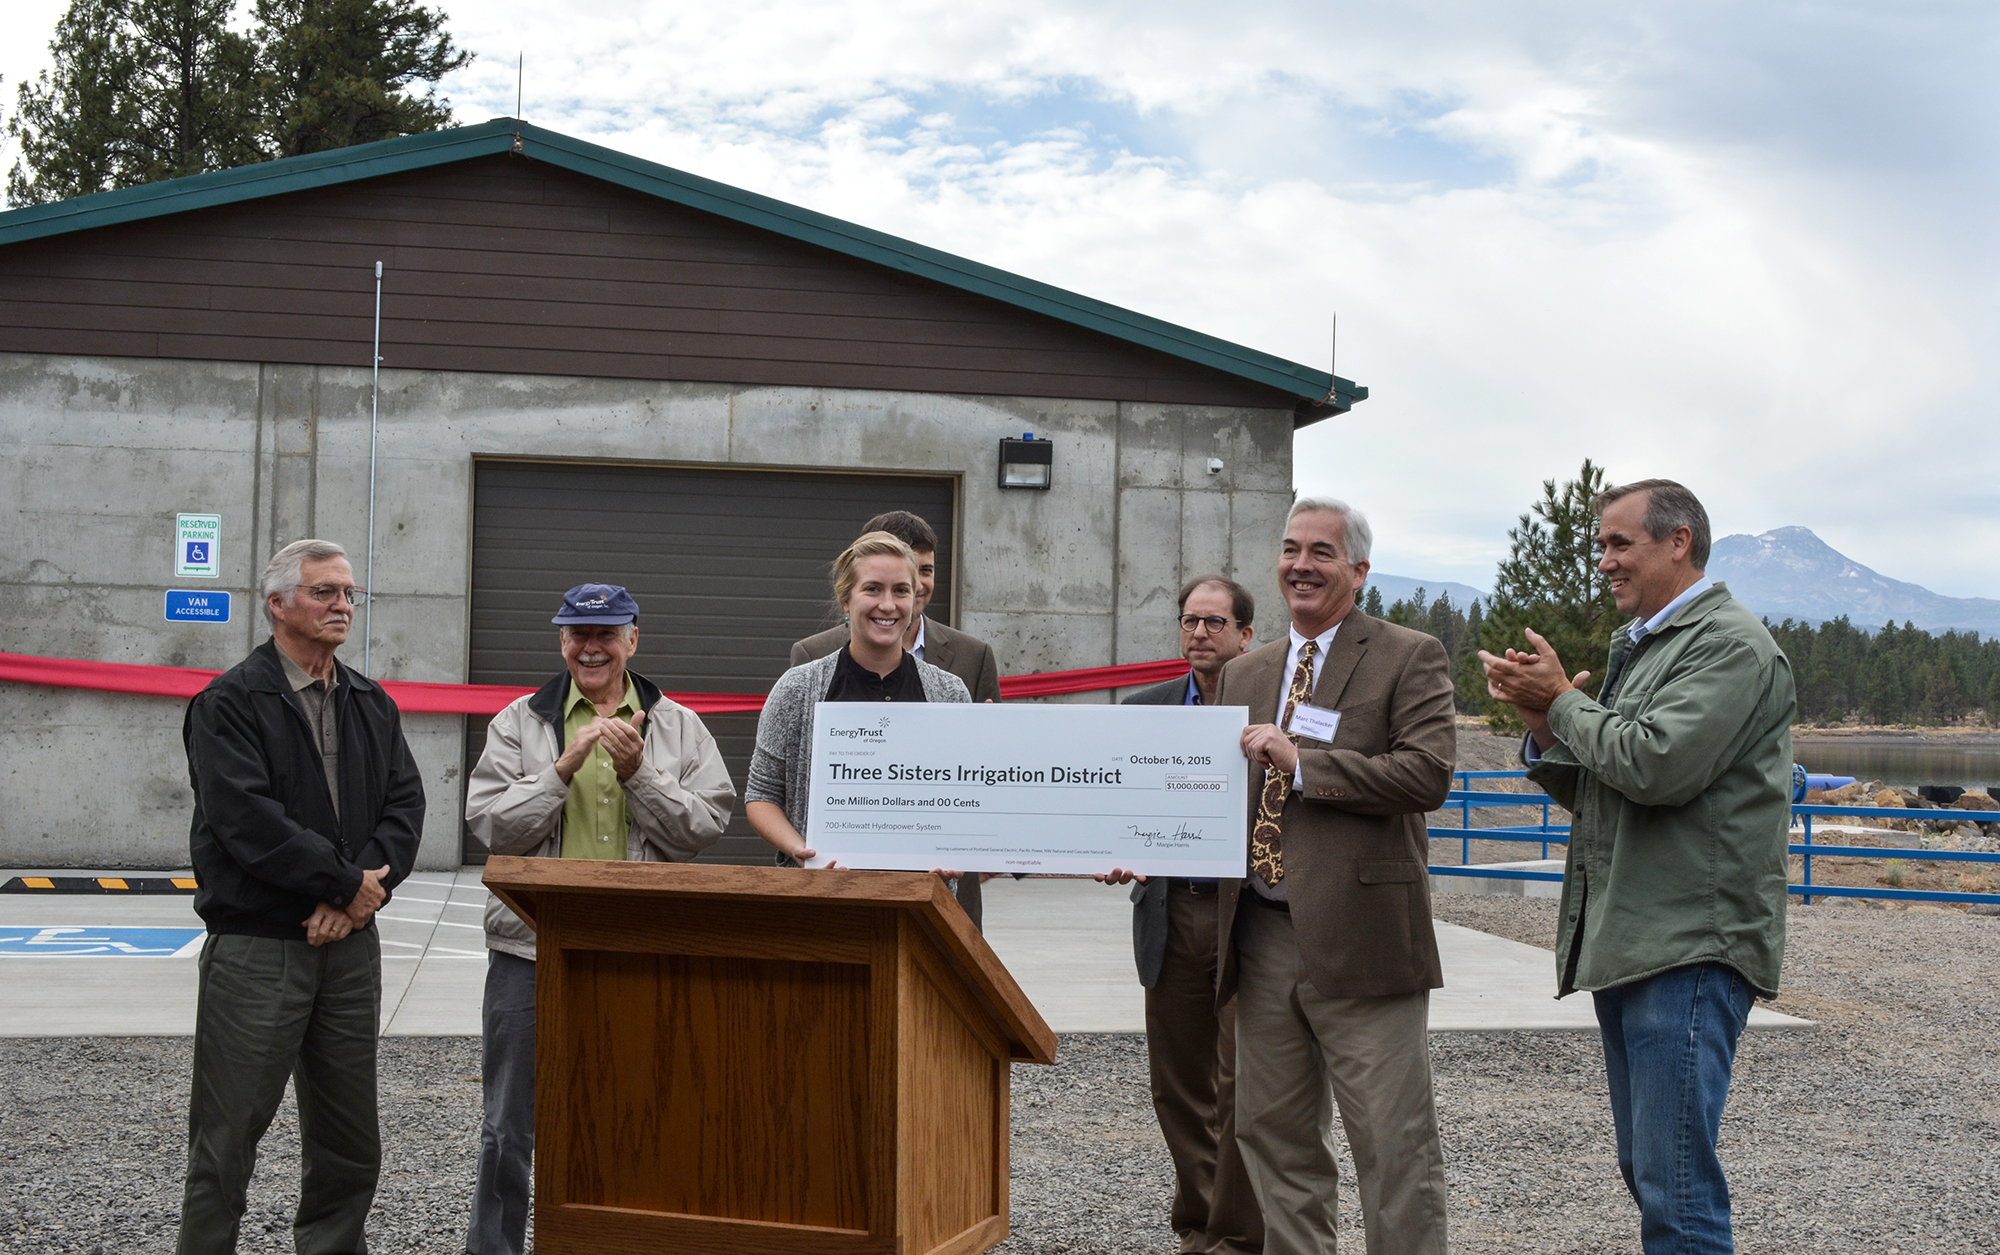 Lindsey Hardy of Energy Trust presents a check for $1 million toward the plant construction and operations for TSID manager Marc Thalacker during observances at Watson Reservoir last week.  Also featured in the photo (l to r) Alan Meyer, board member, Energy Trust of Oregon; John Reynolds, board member, Energy Trust of Oregon; Jed Jorgensen, renewables program manager, Energy Trust of Oregon (back); Peter West, energy programs manager, Energy Trust of Oregon (back) and Oregon Sen. Jeff Merkley, - Photo Credit: Energy Trust of Oregon